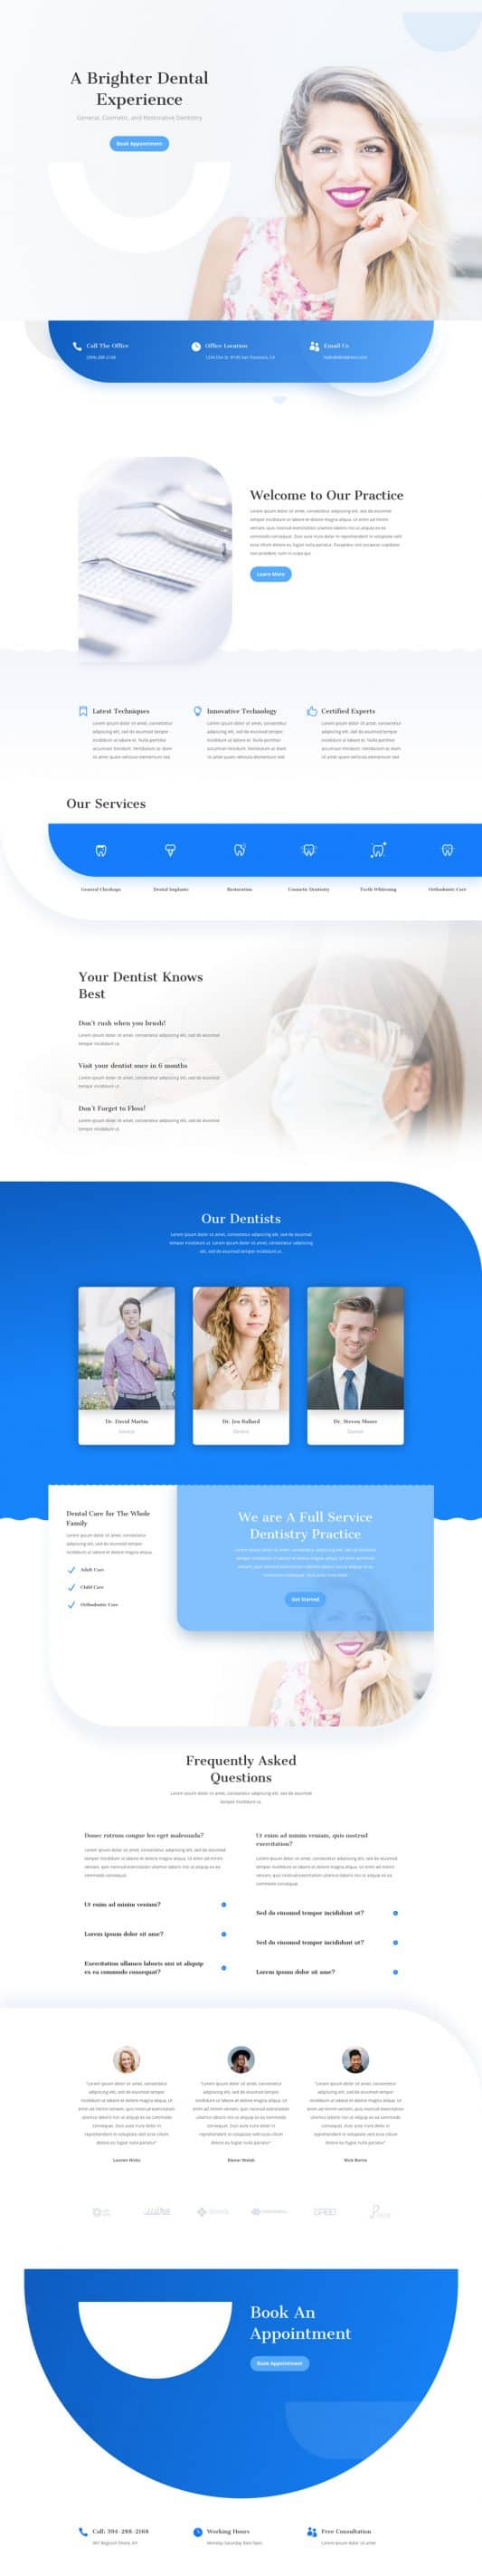 Dentist Landing Page Style 1